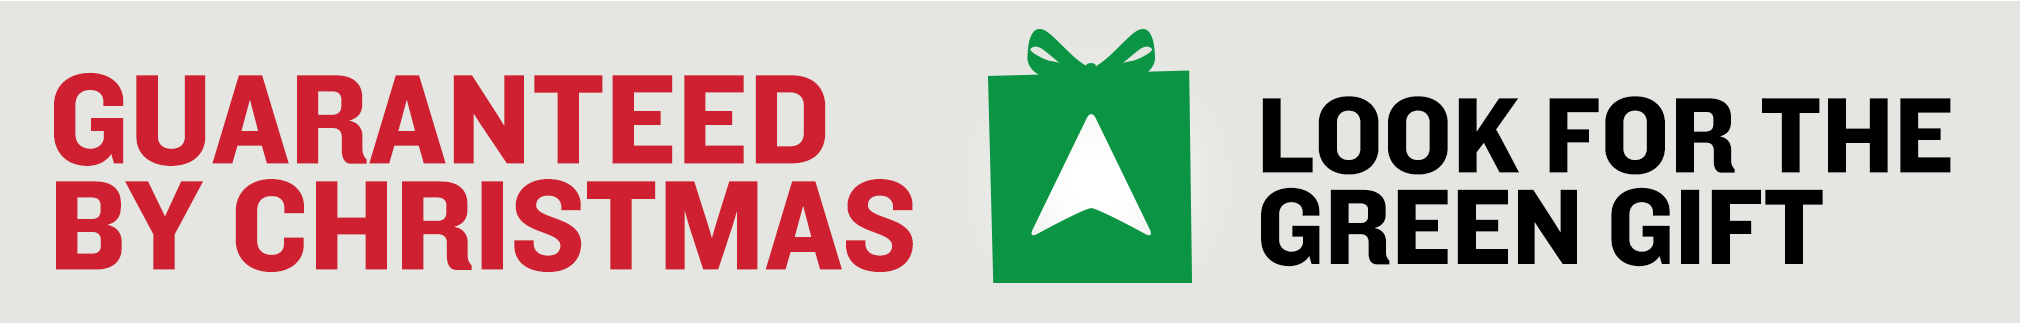 Extended Free Delivery by Christmas